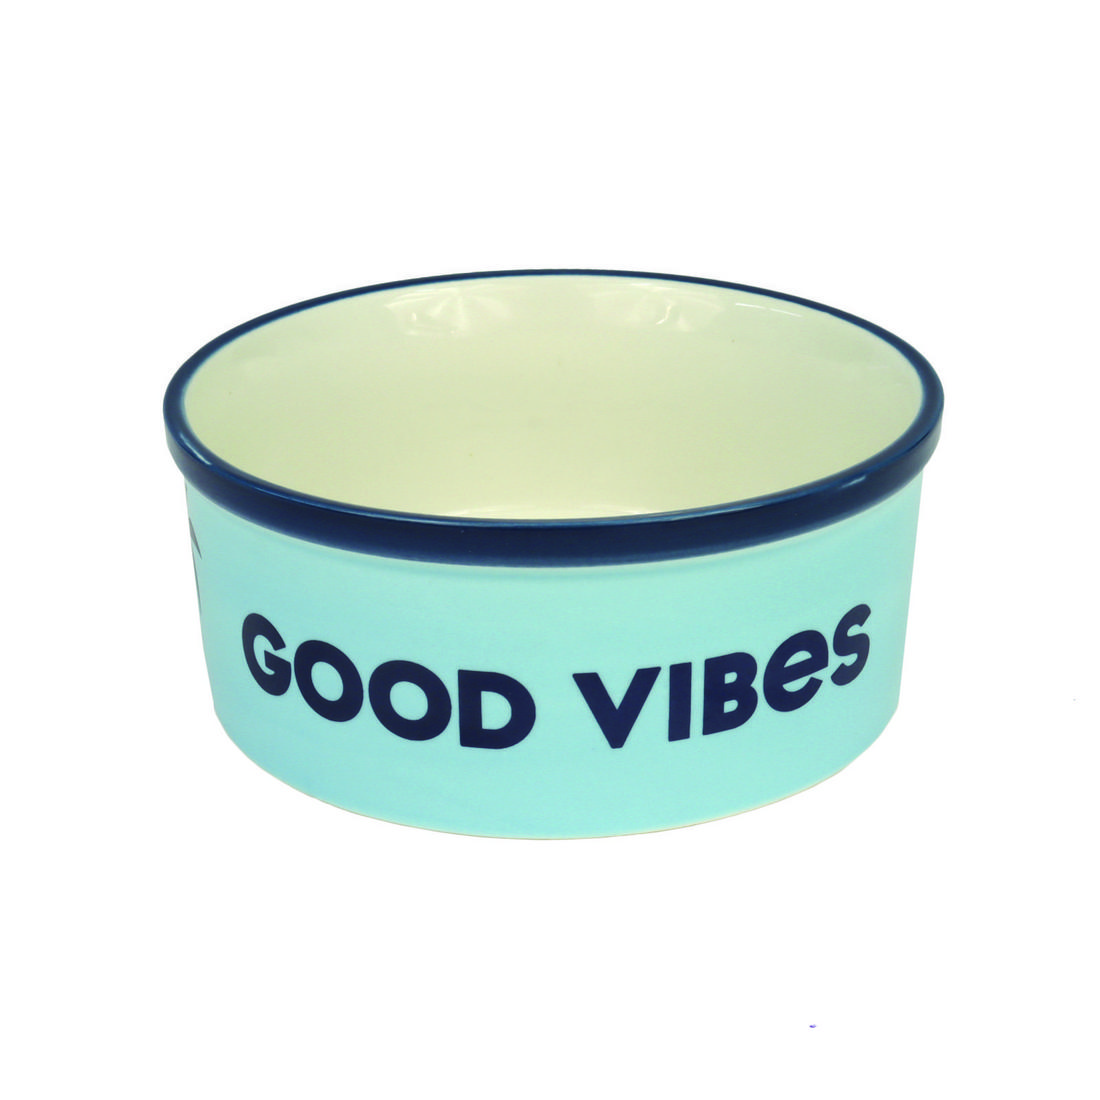 Life is Good® Ceramic Bowls